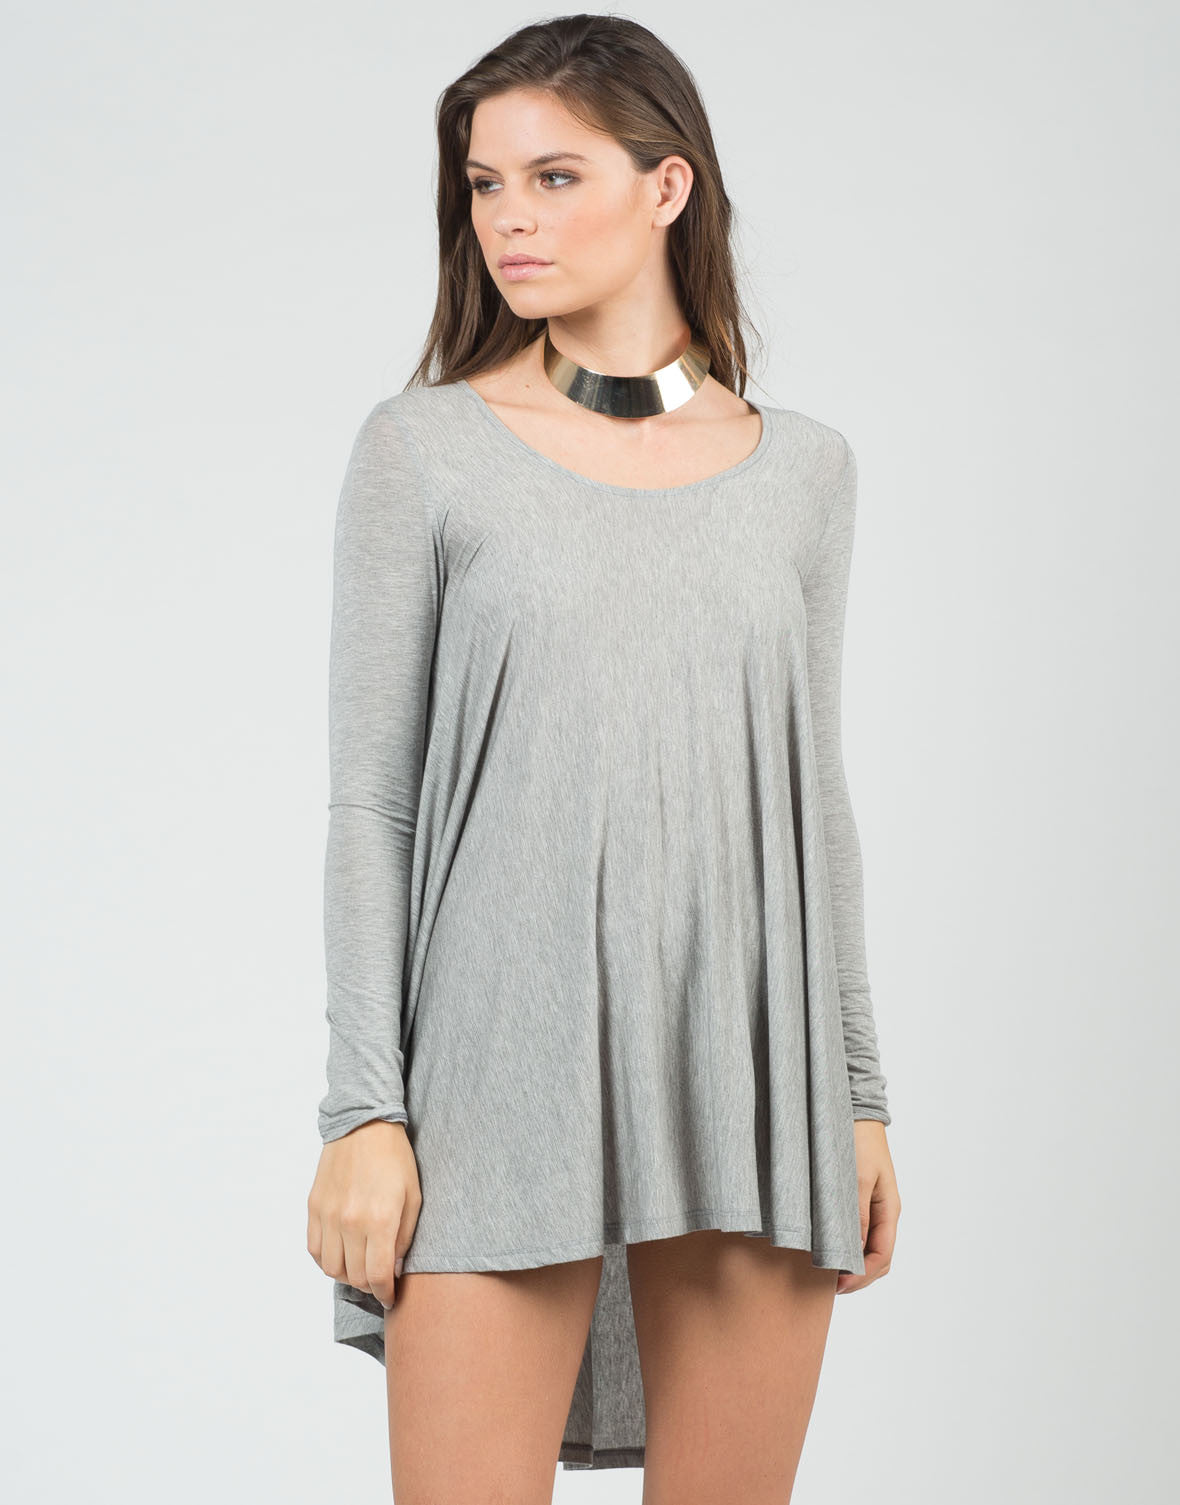 Long Sleeve Swing Top - 2020AVE